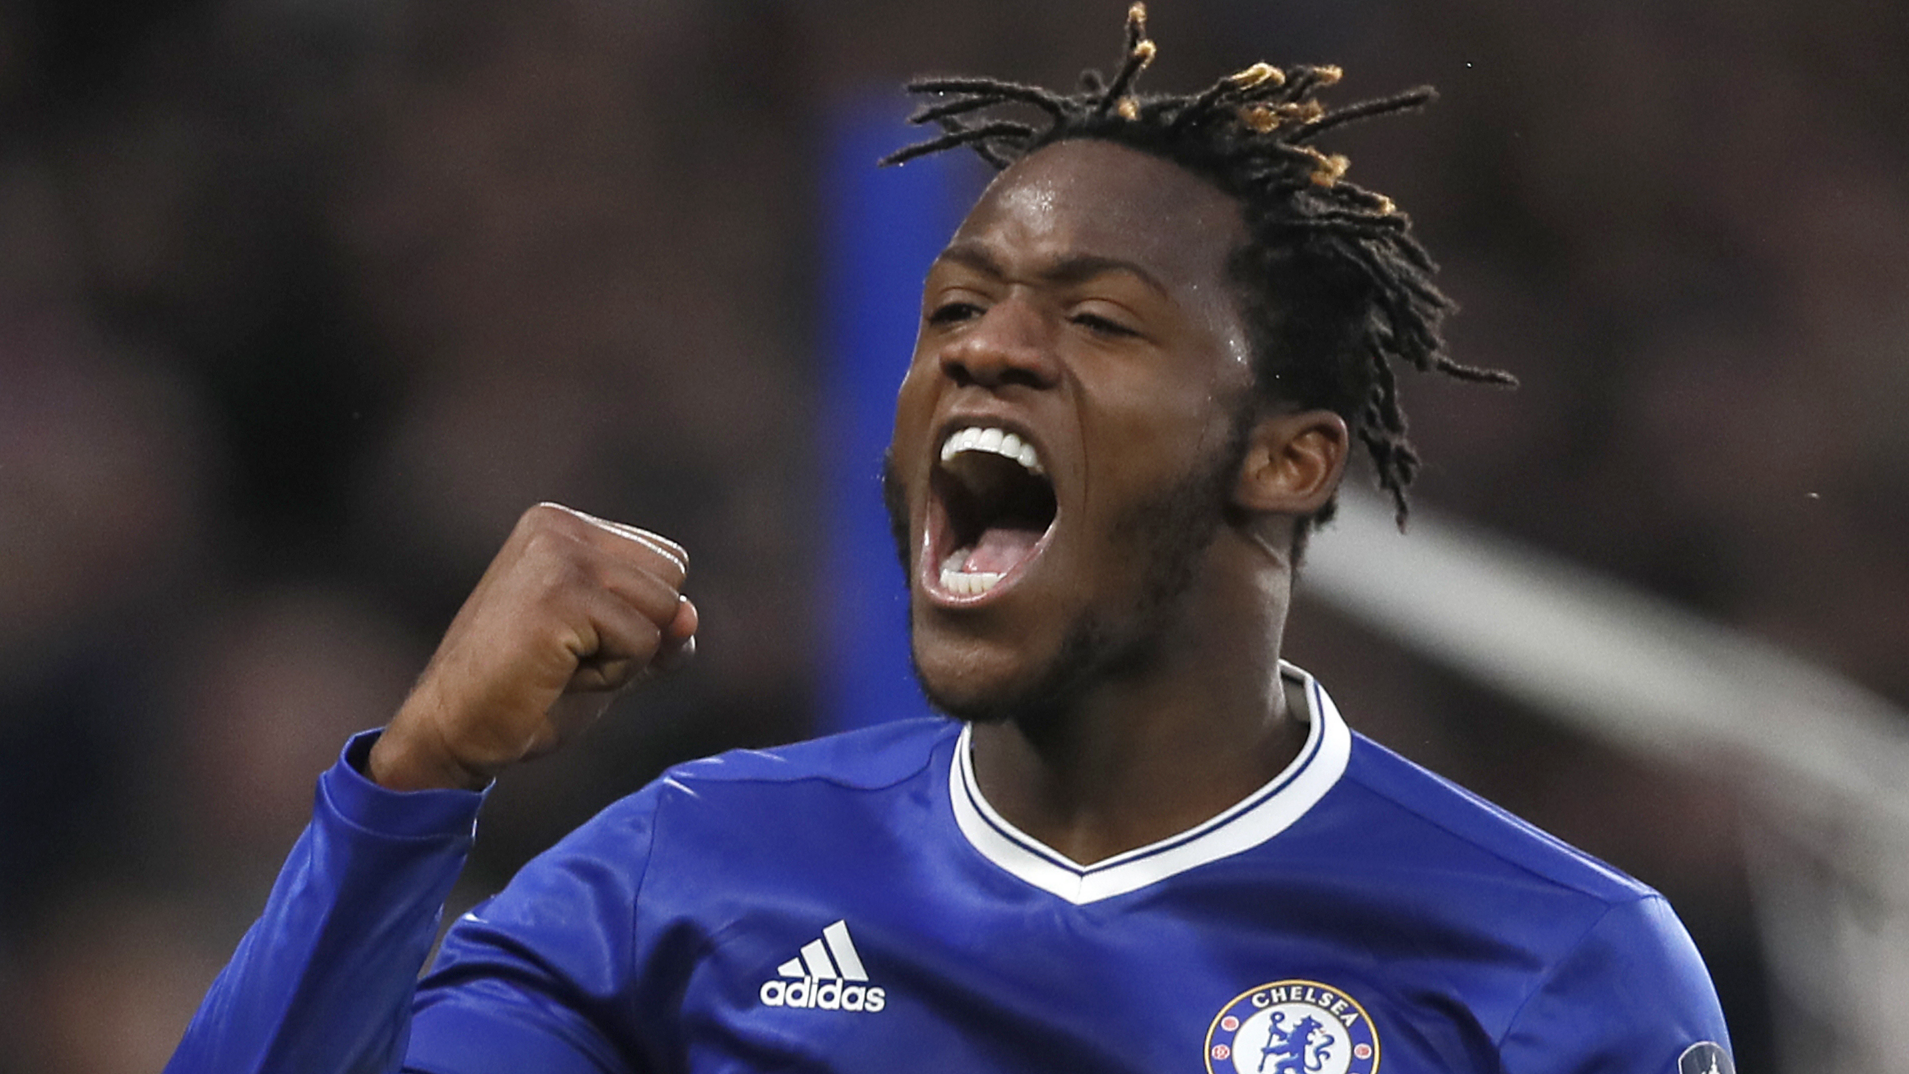 Monaco target Michy Batshuayi after swooping for Chelsea team-mate Cesc Fabregas